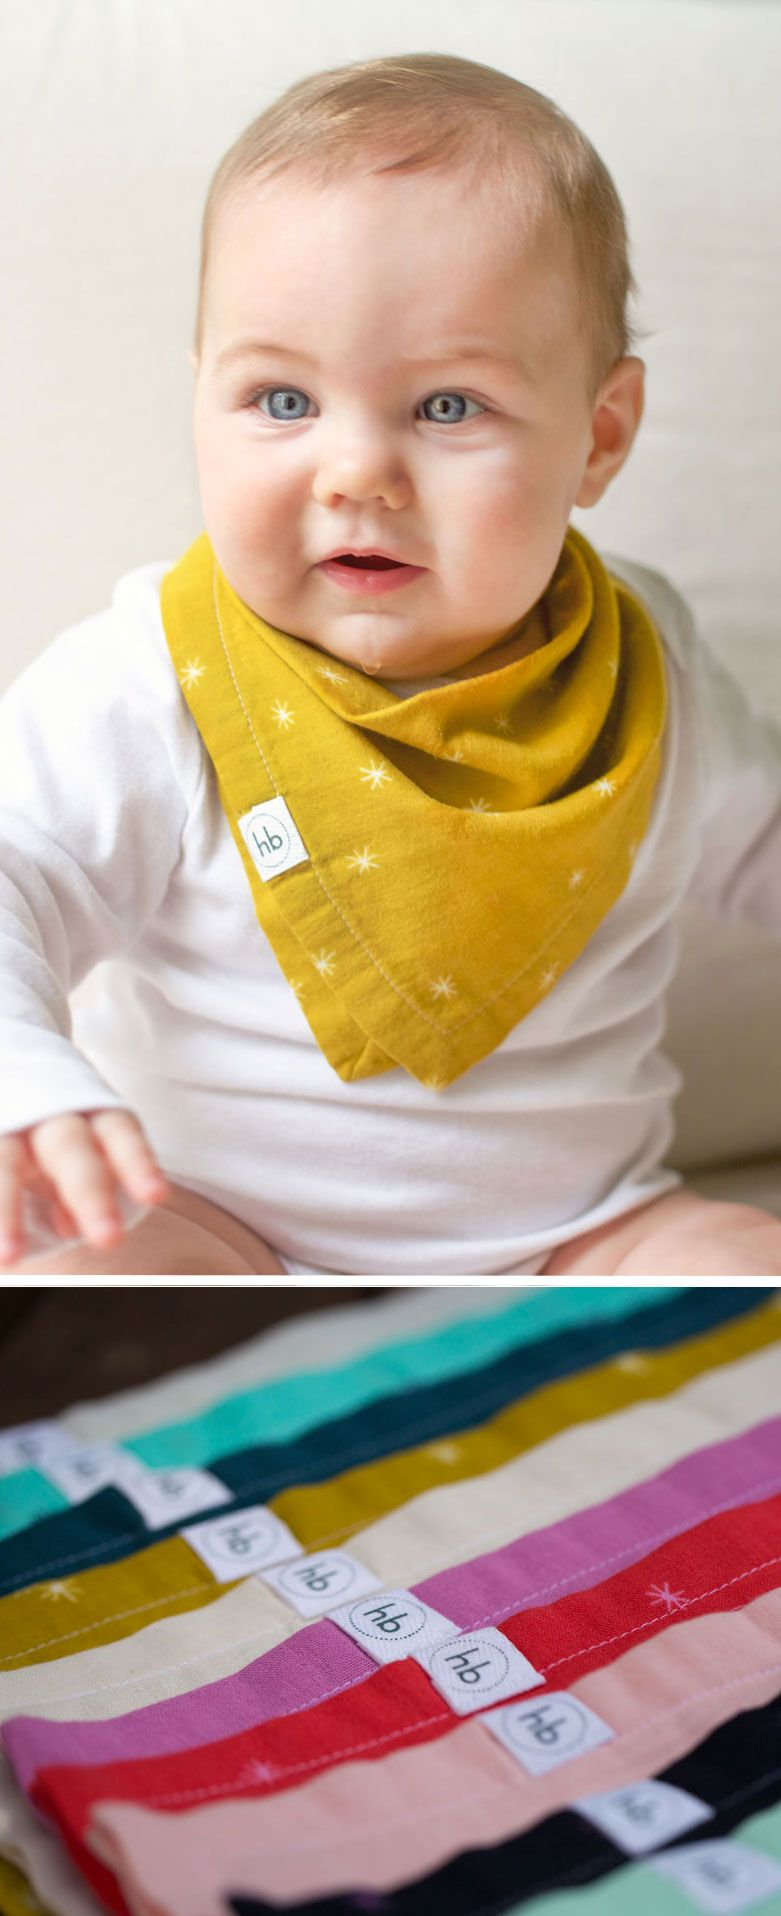 Ollie bandana drool bib hemming birds boutique soft absorbent ollie bandana drool bib hemming birds boutique soft absorbent adorable girl baby boy diy giftsbaby negle Image collections